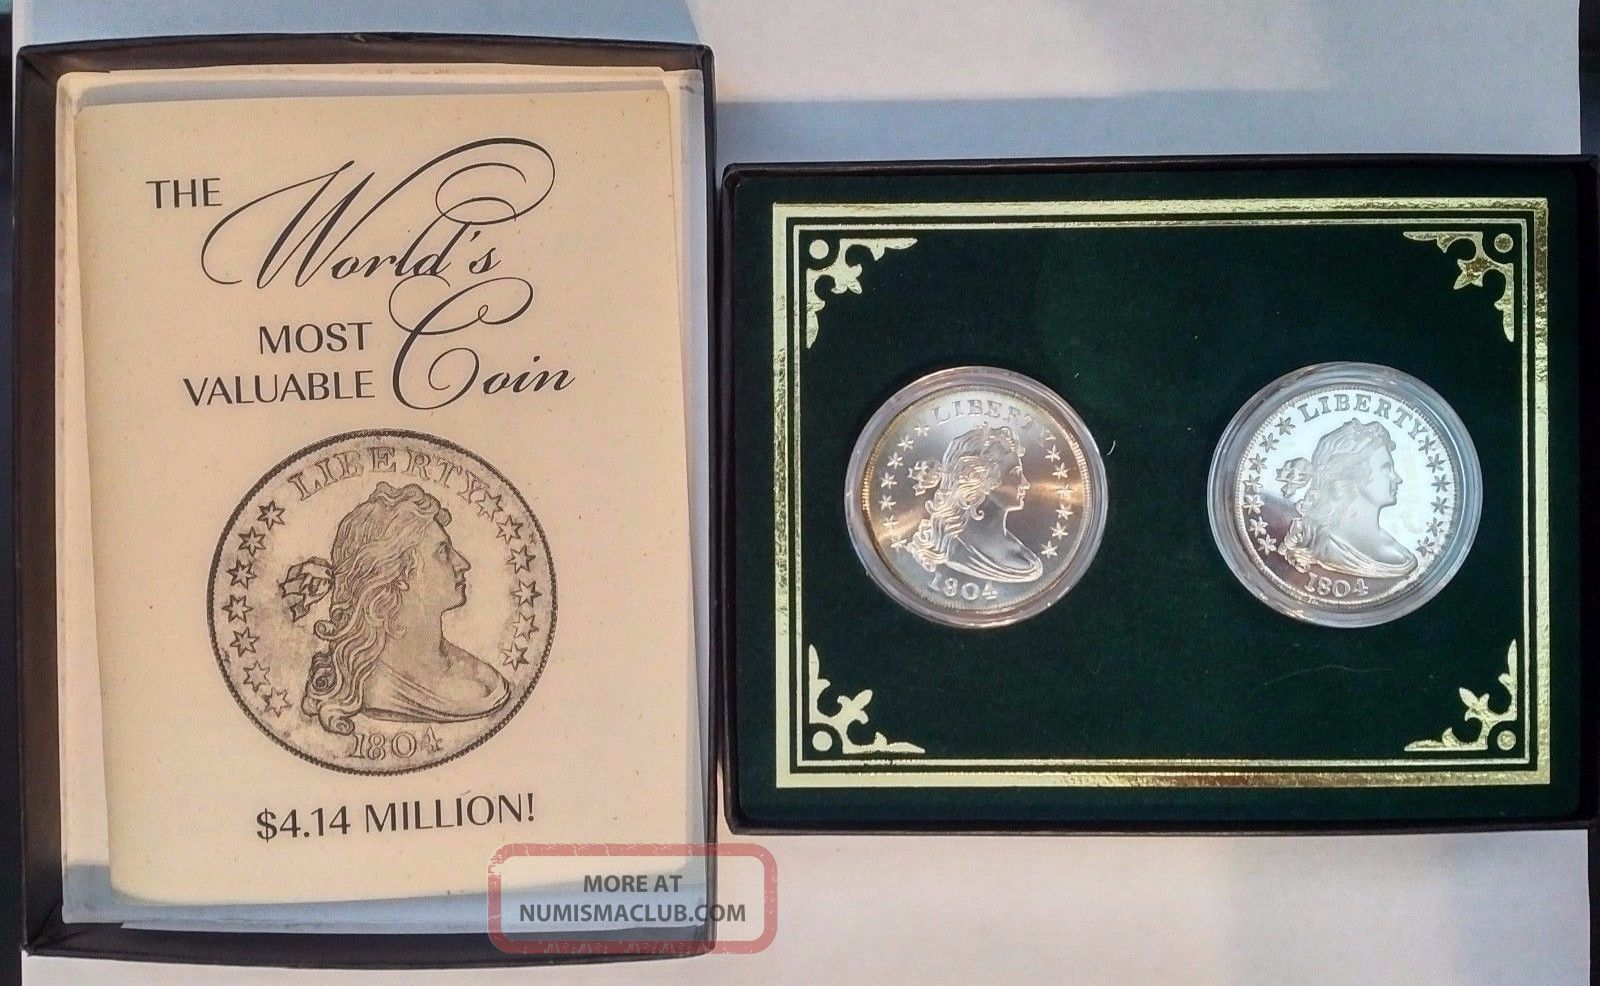 1804 Bust Dollar Silver Proof Copy Gallery Museum Ron Landis Exonumia photo